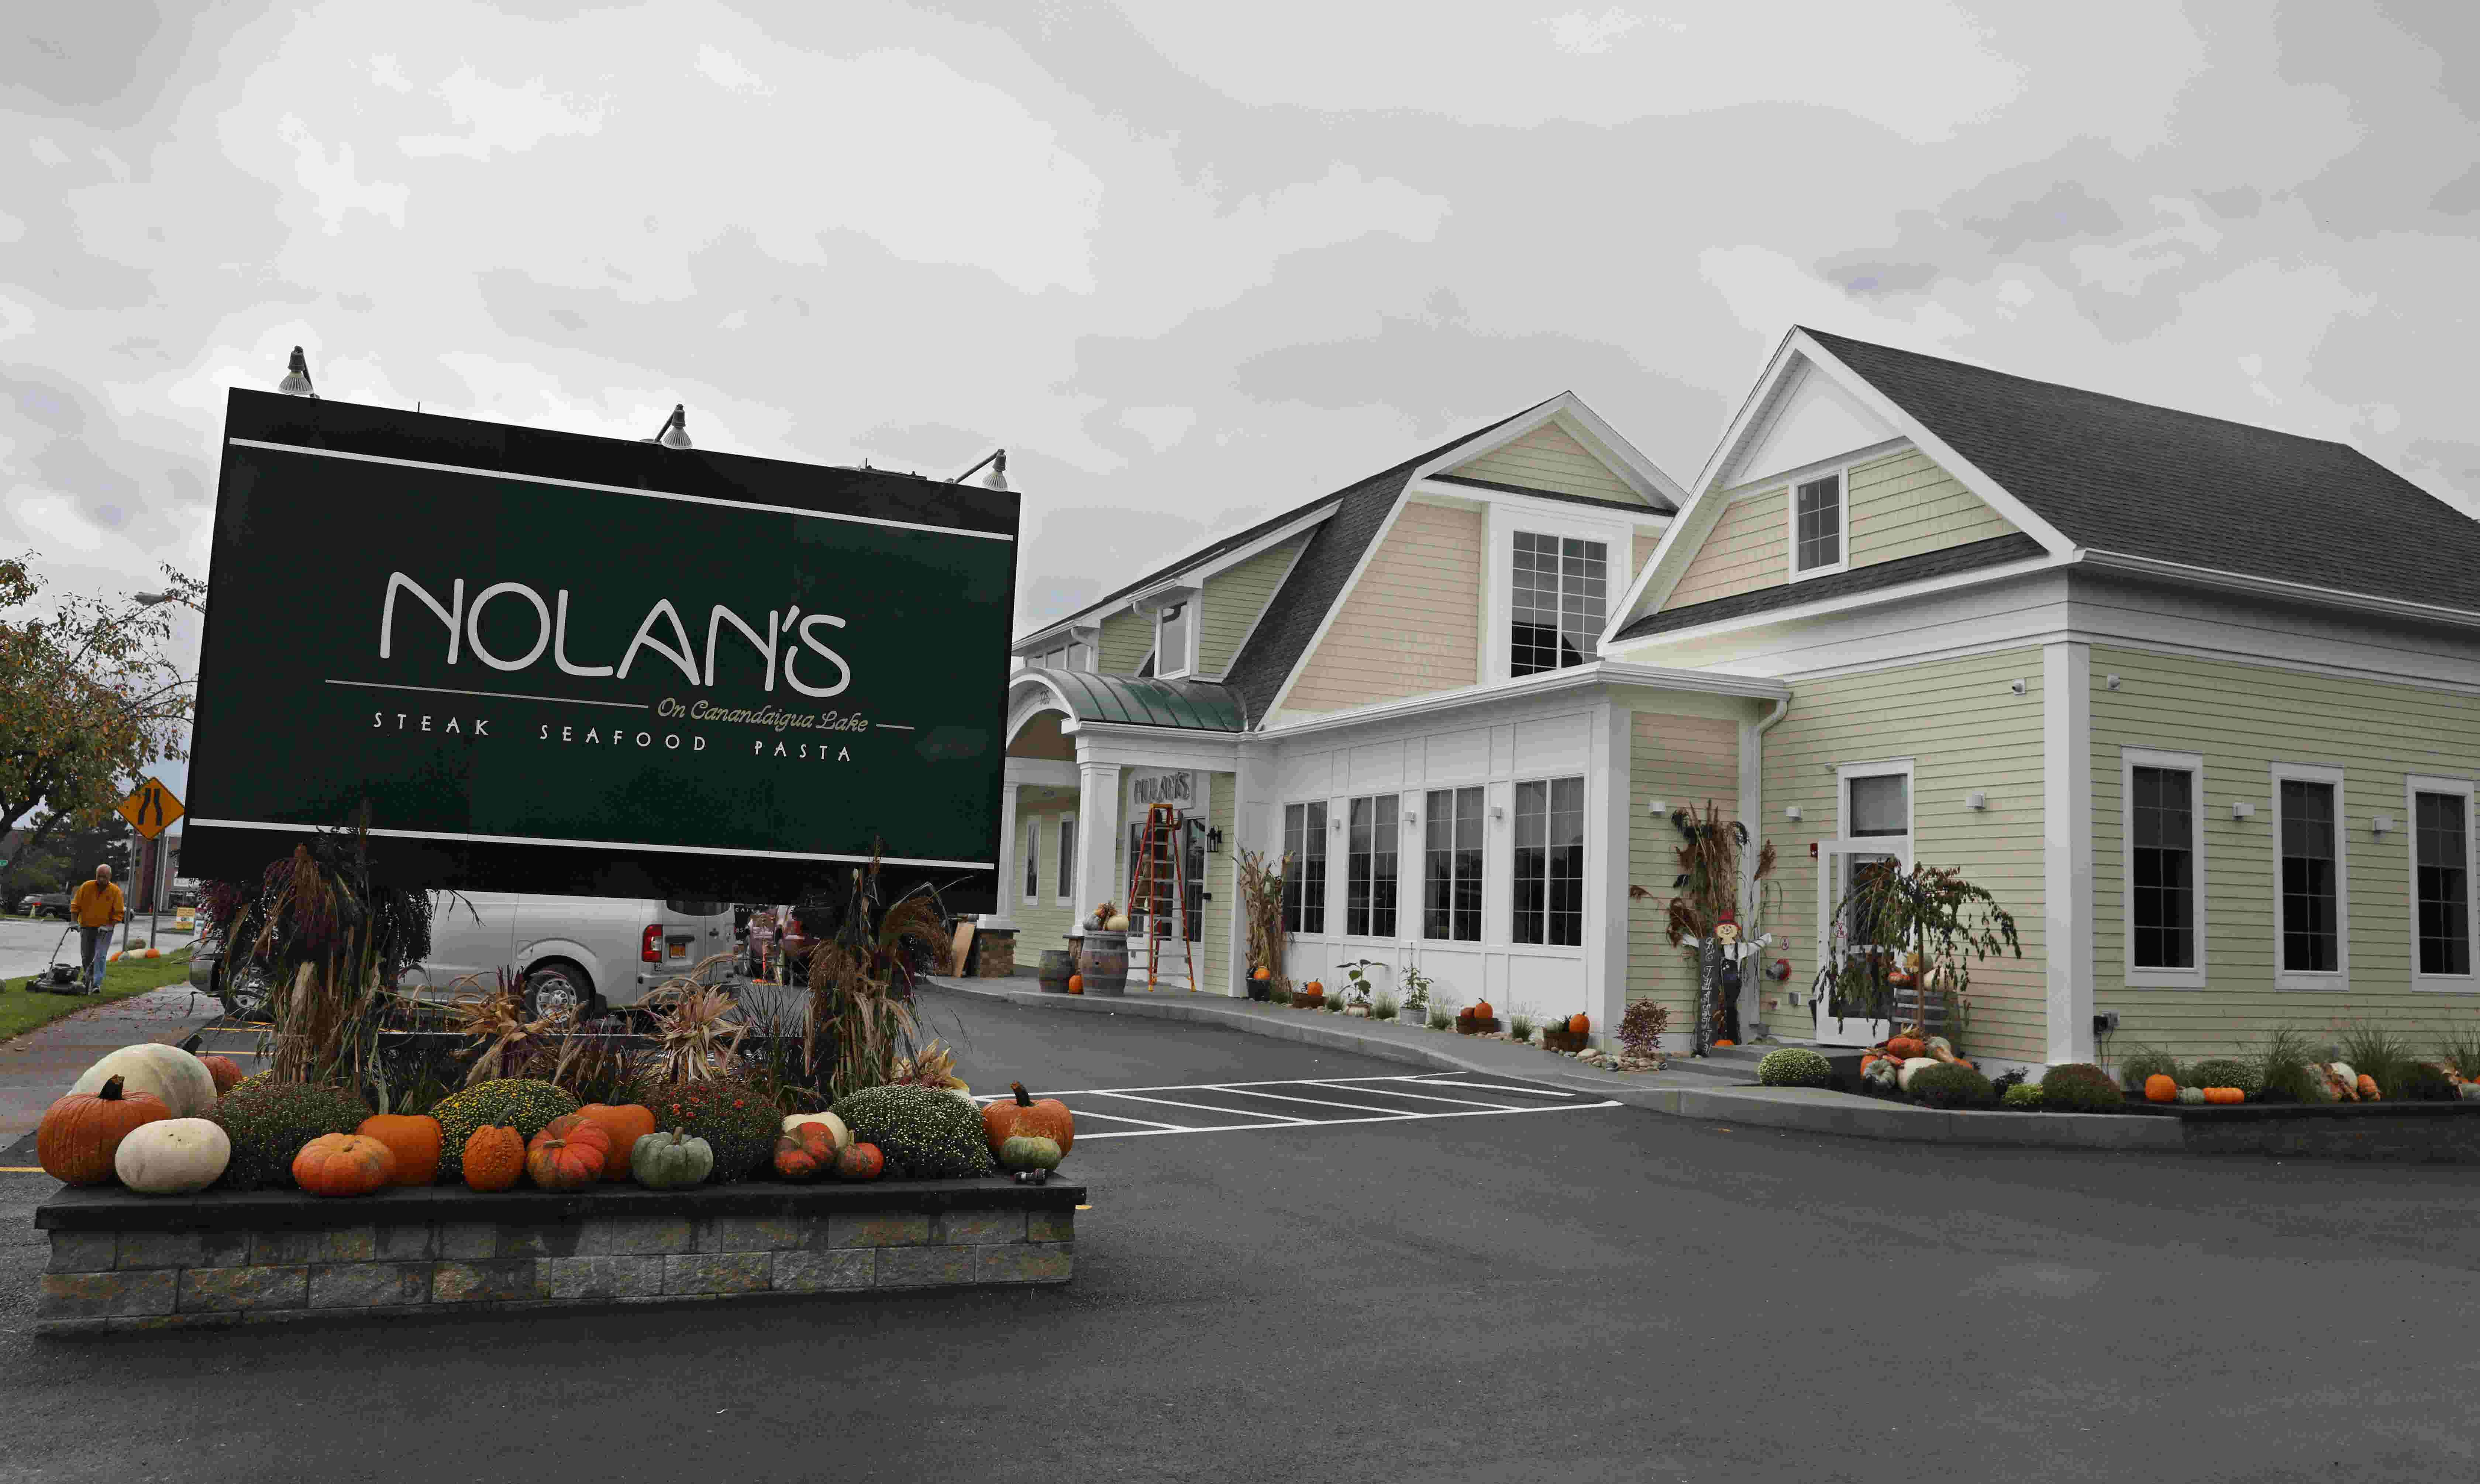 Nolan S Restaurant Reopens Monday In Canandaigua After 2 4 Million Rebuild